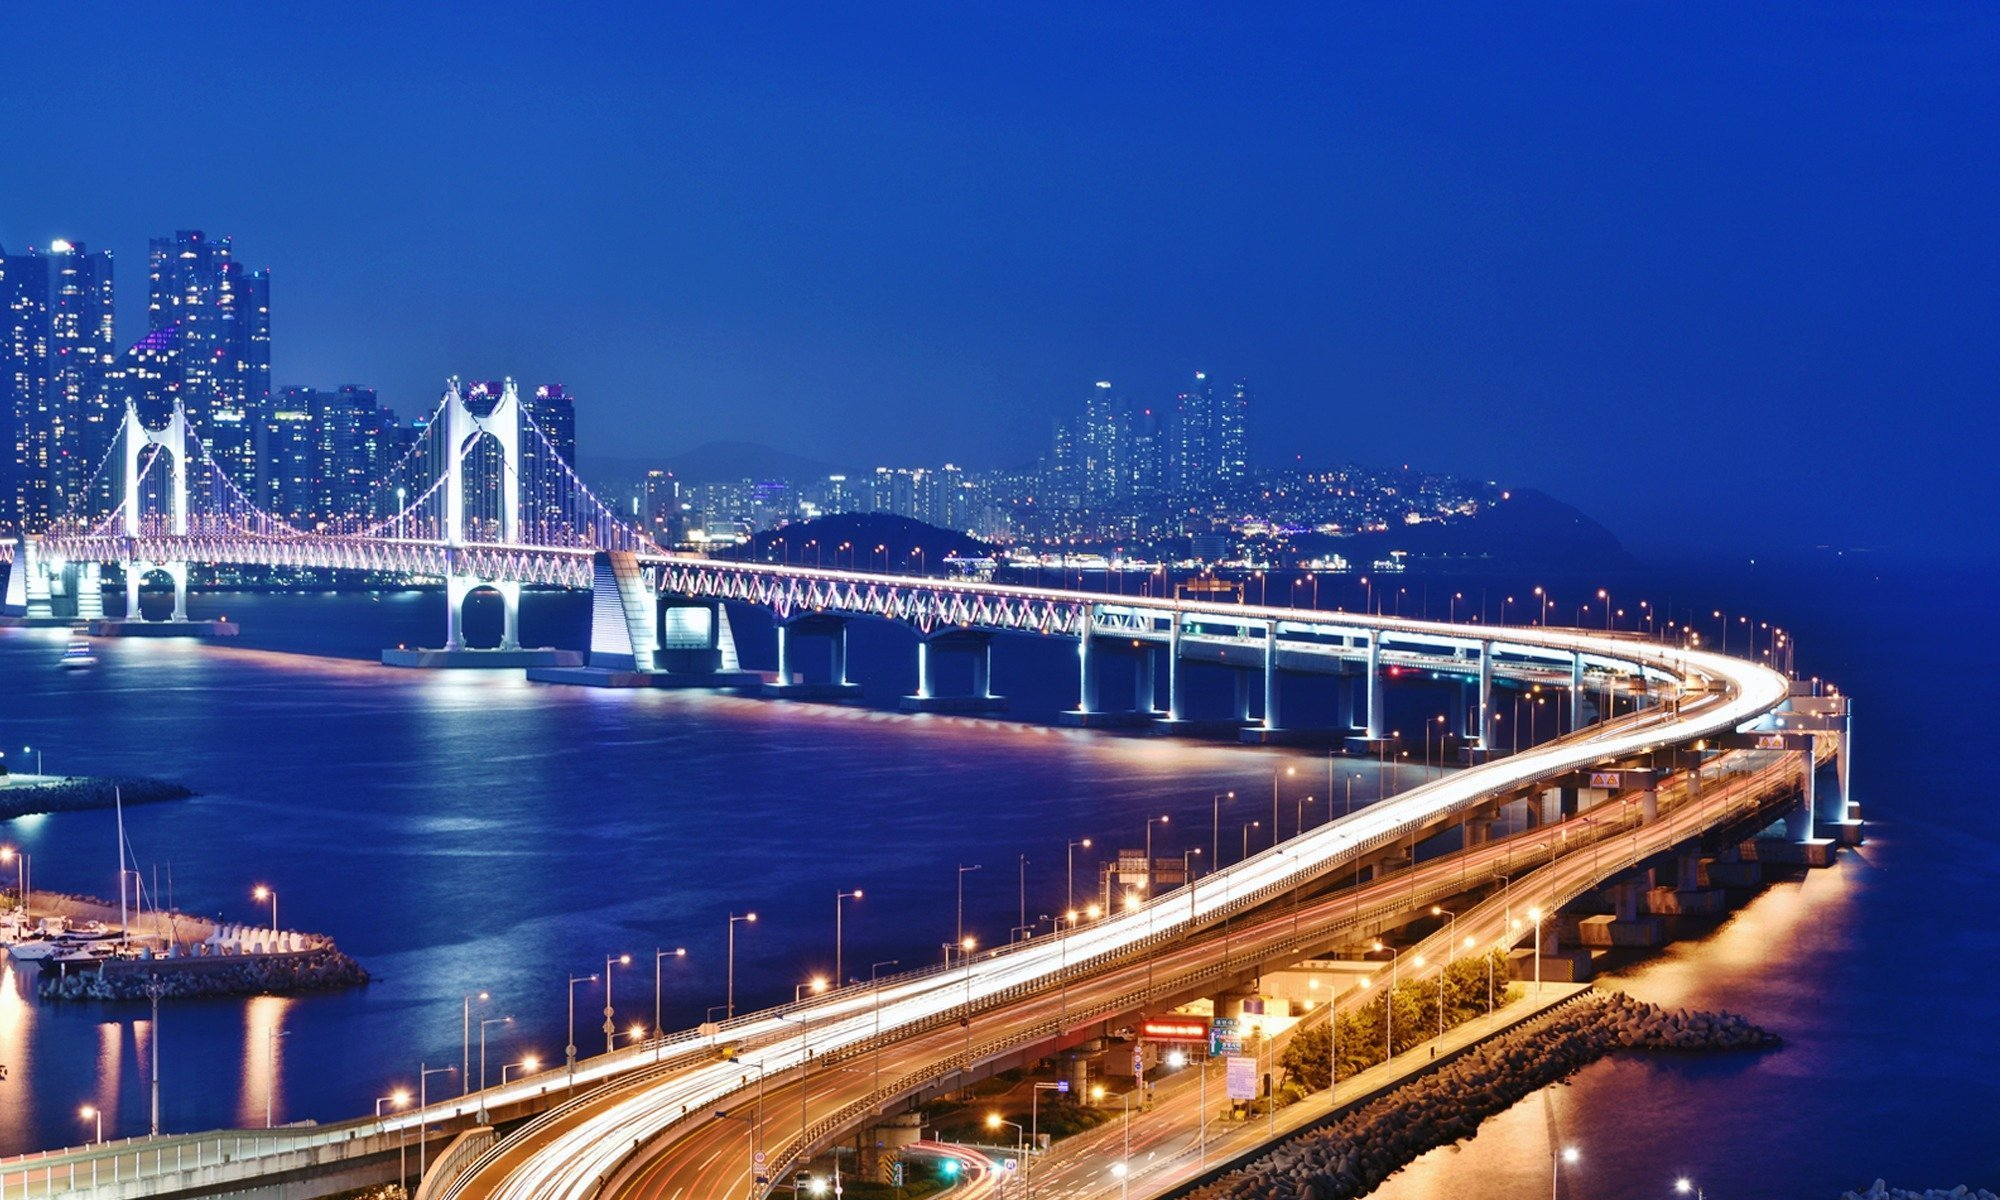 Home to gorgeous white sand beaches, breathtaking coastline views, and majestic mountains, Busan is the perfect destination to kick back and enjoy the view. Find your ideal base with this quick and easy guide on where to stay in Busan.